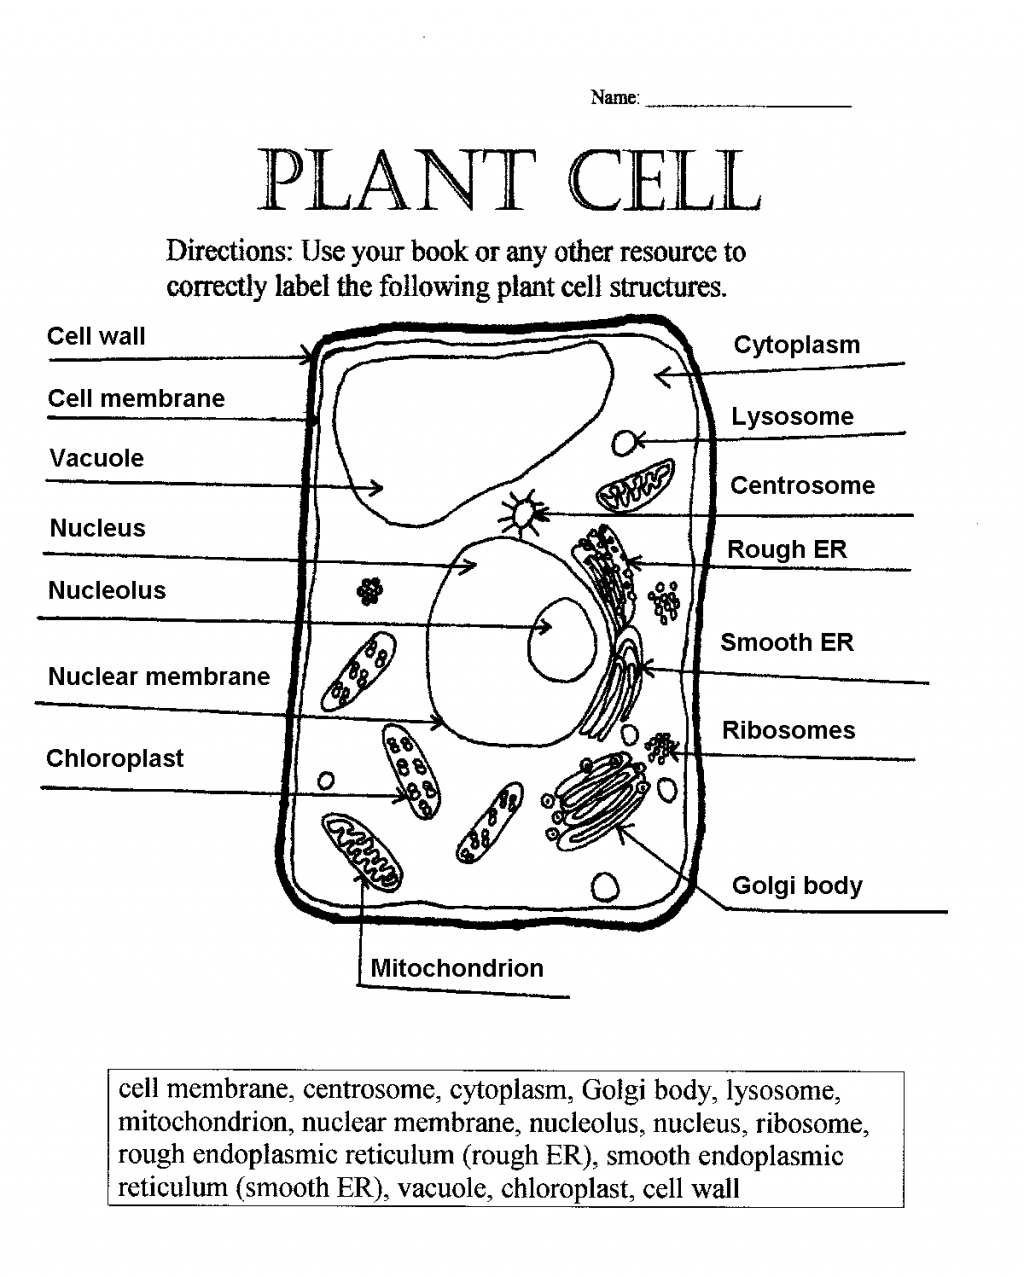 Printables Parts Of The Cell Worksheet printables label plant cell worksheet sharpmindprojects fireyourmentor free printable worksheets animal and cells education com middle school life science cells